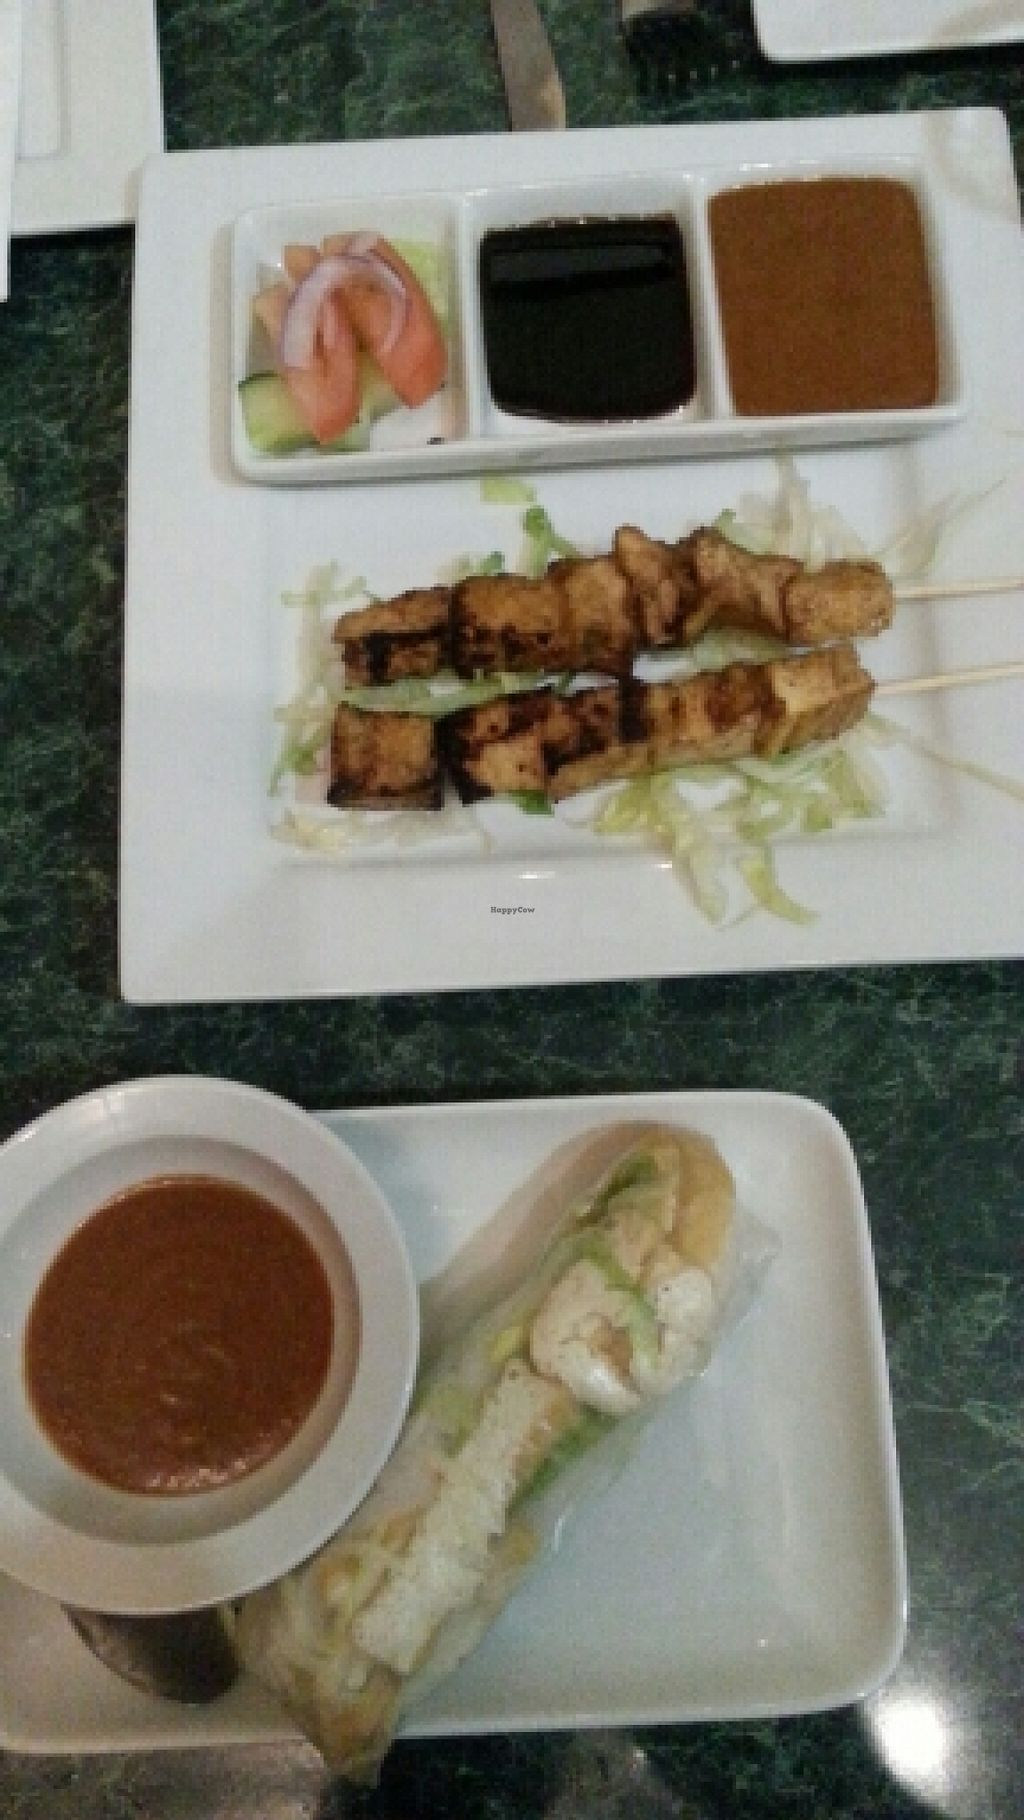 """Photo of Indo  by <a href=""""/members/profile/slithers"""">slithers</a> <br/>spring roll & tofu kebabs <br/> May 15, 2016  - <a href='/contact/abuse/image/70166/149123'>Report</a>"""